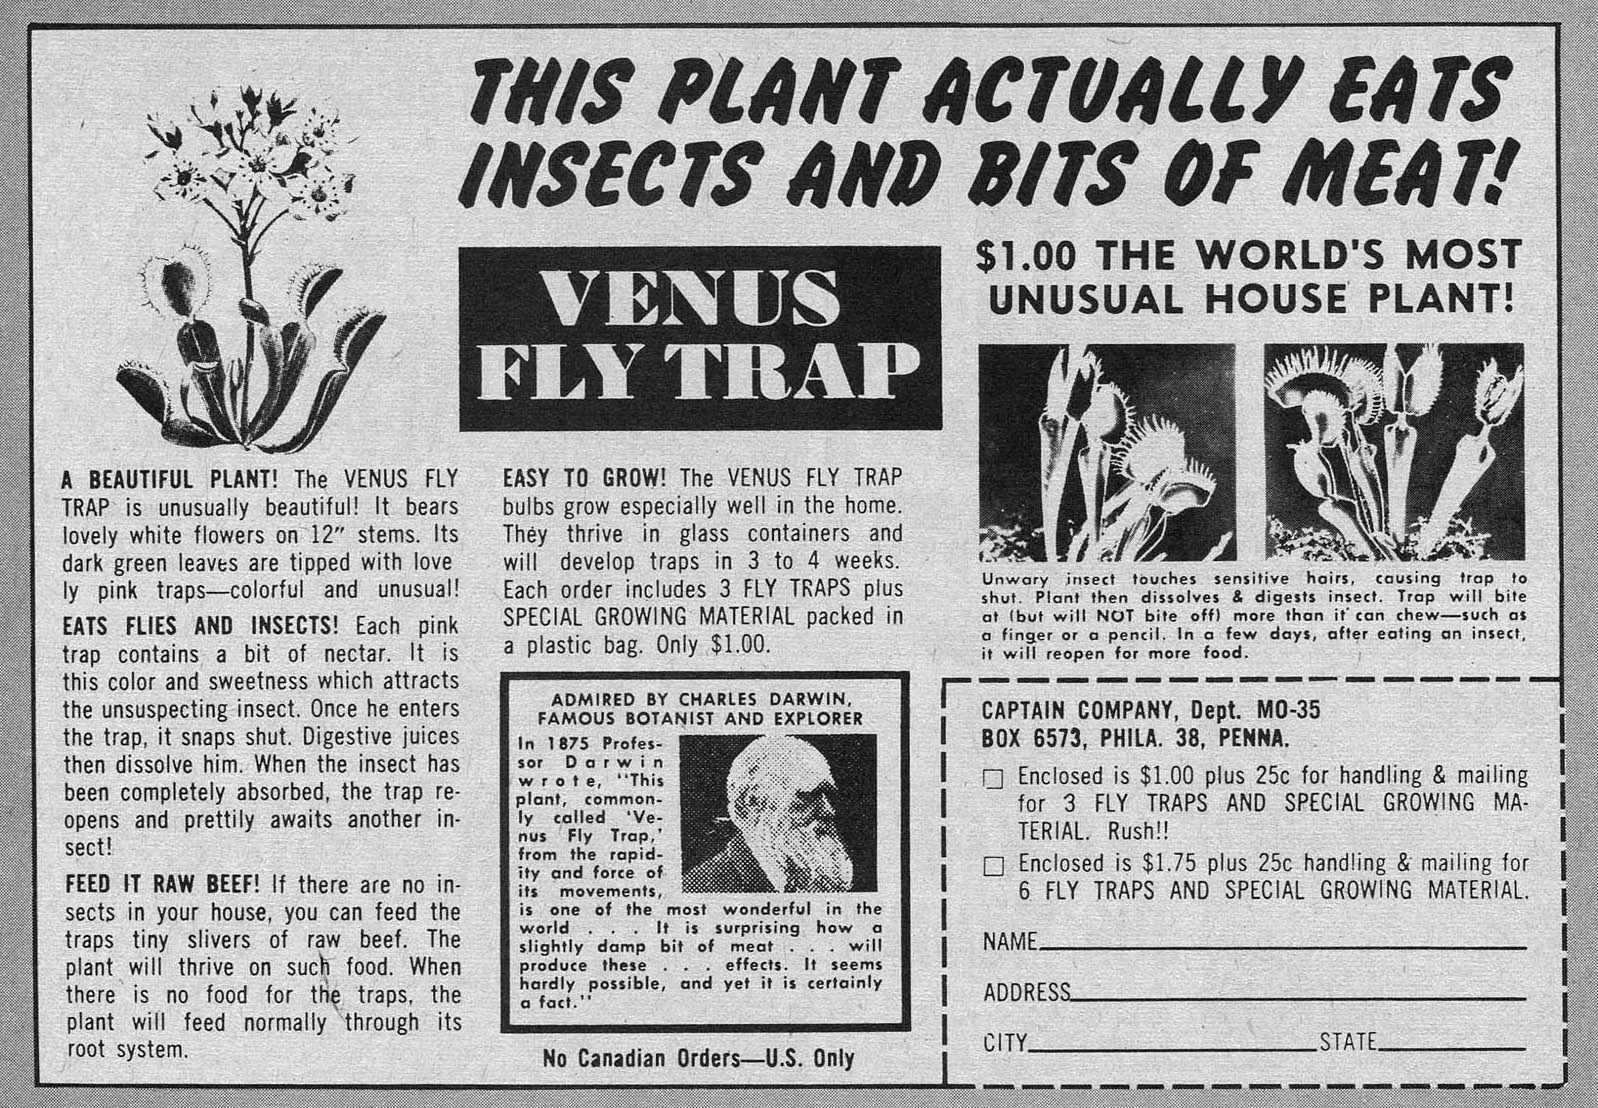 venus fly trap advert